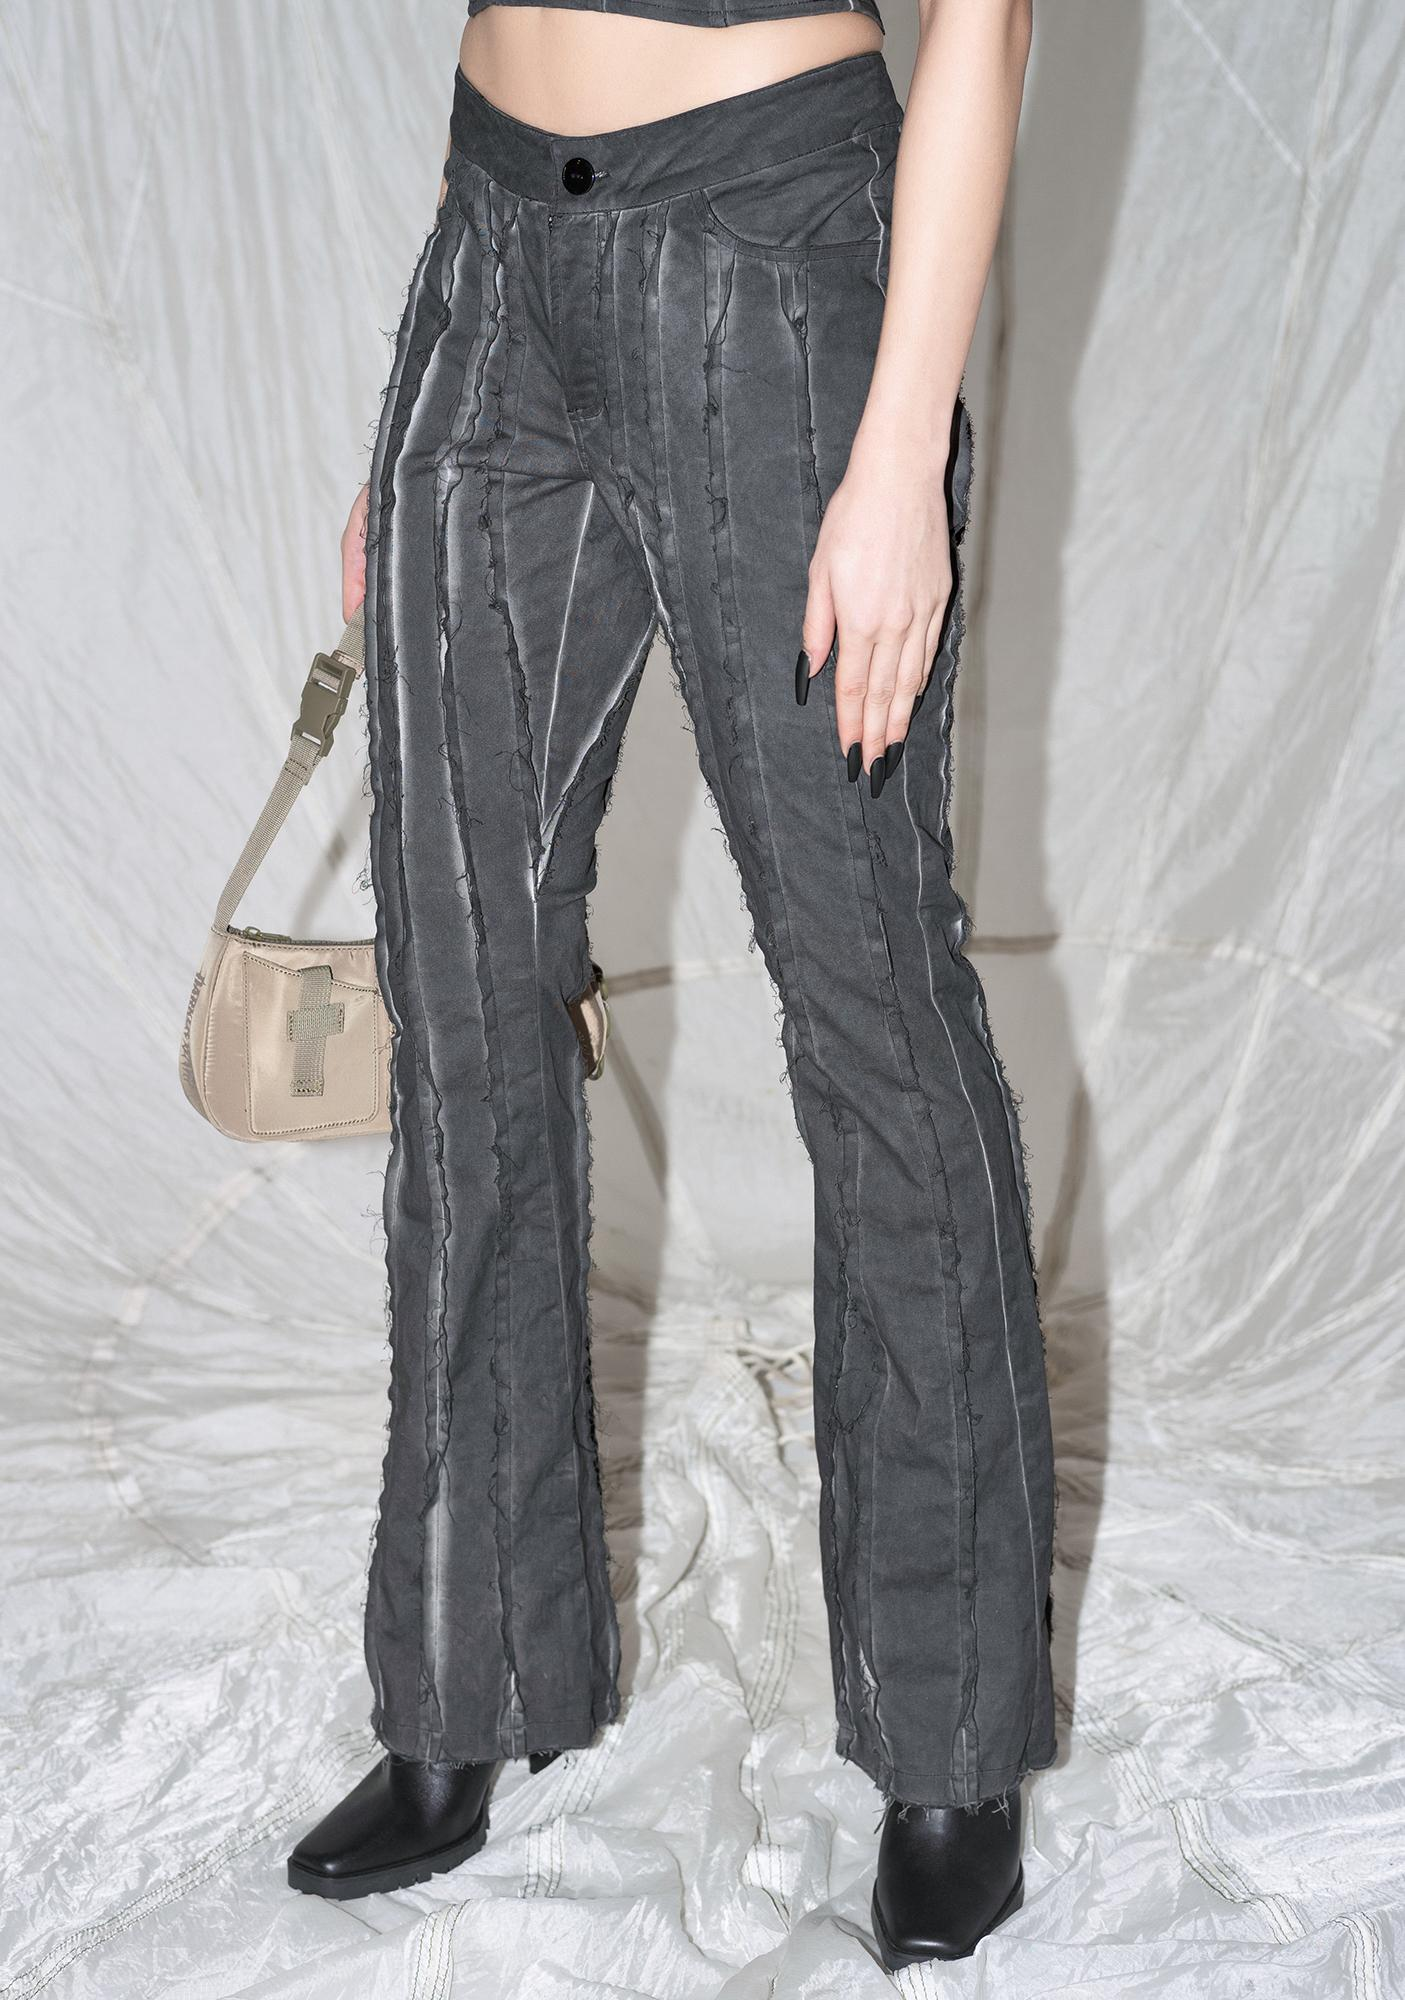 DARKER WAVS Synth Washed Pants With Raw Edge Details